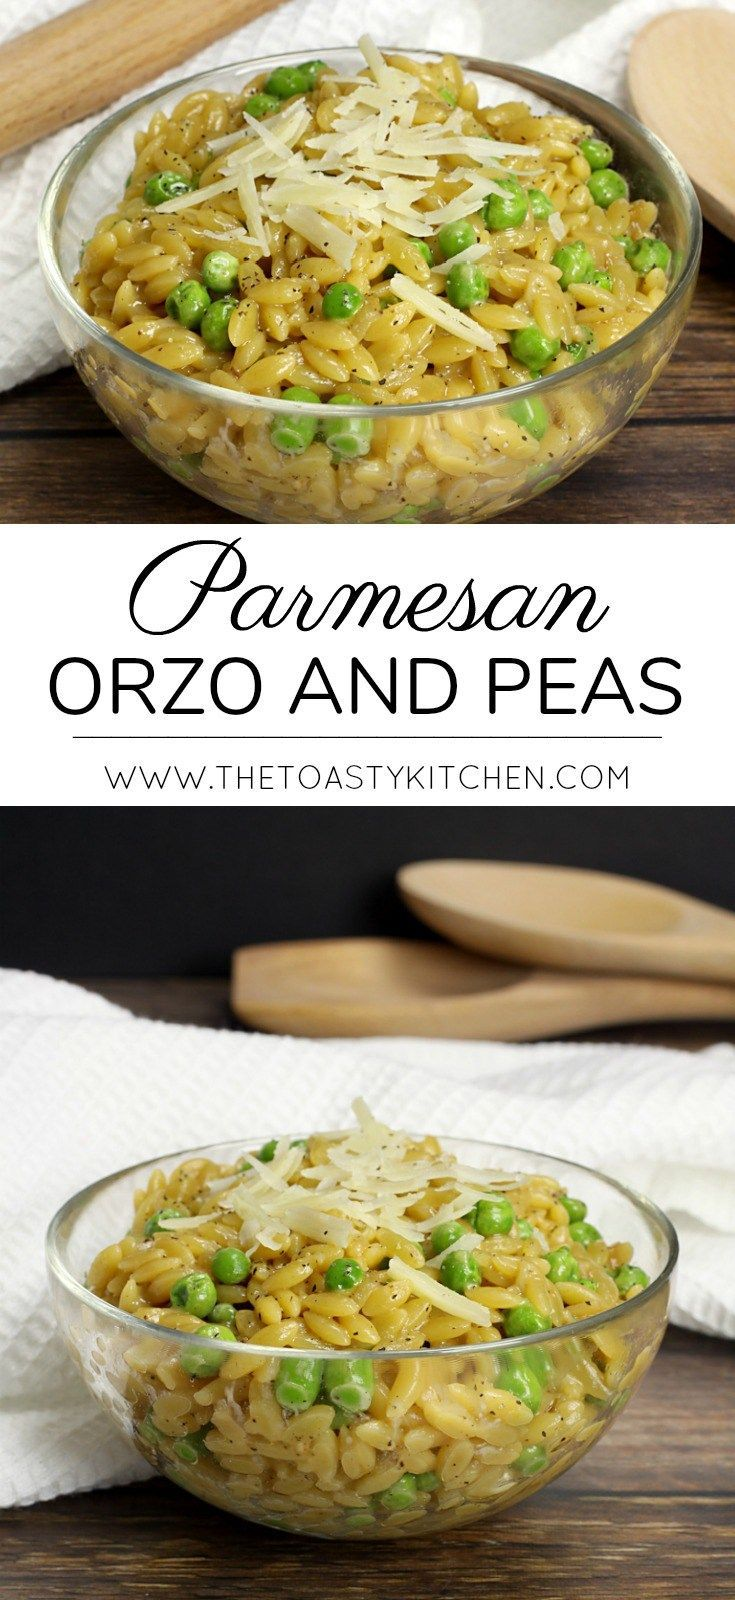 Parmesan Orzo and Peas by The Toasty Kitchen #sidedish #recipe #pasta #orzo #peas #homemade